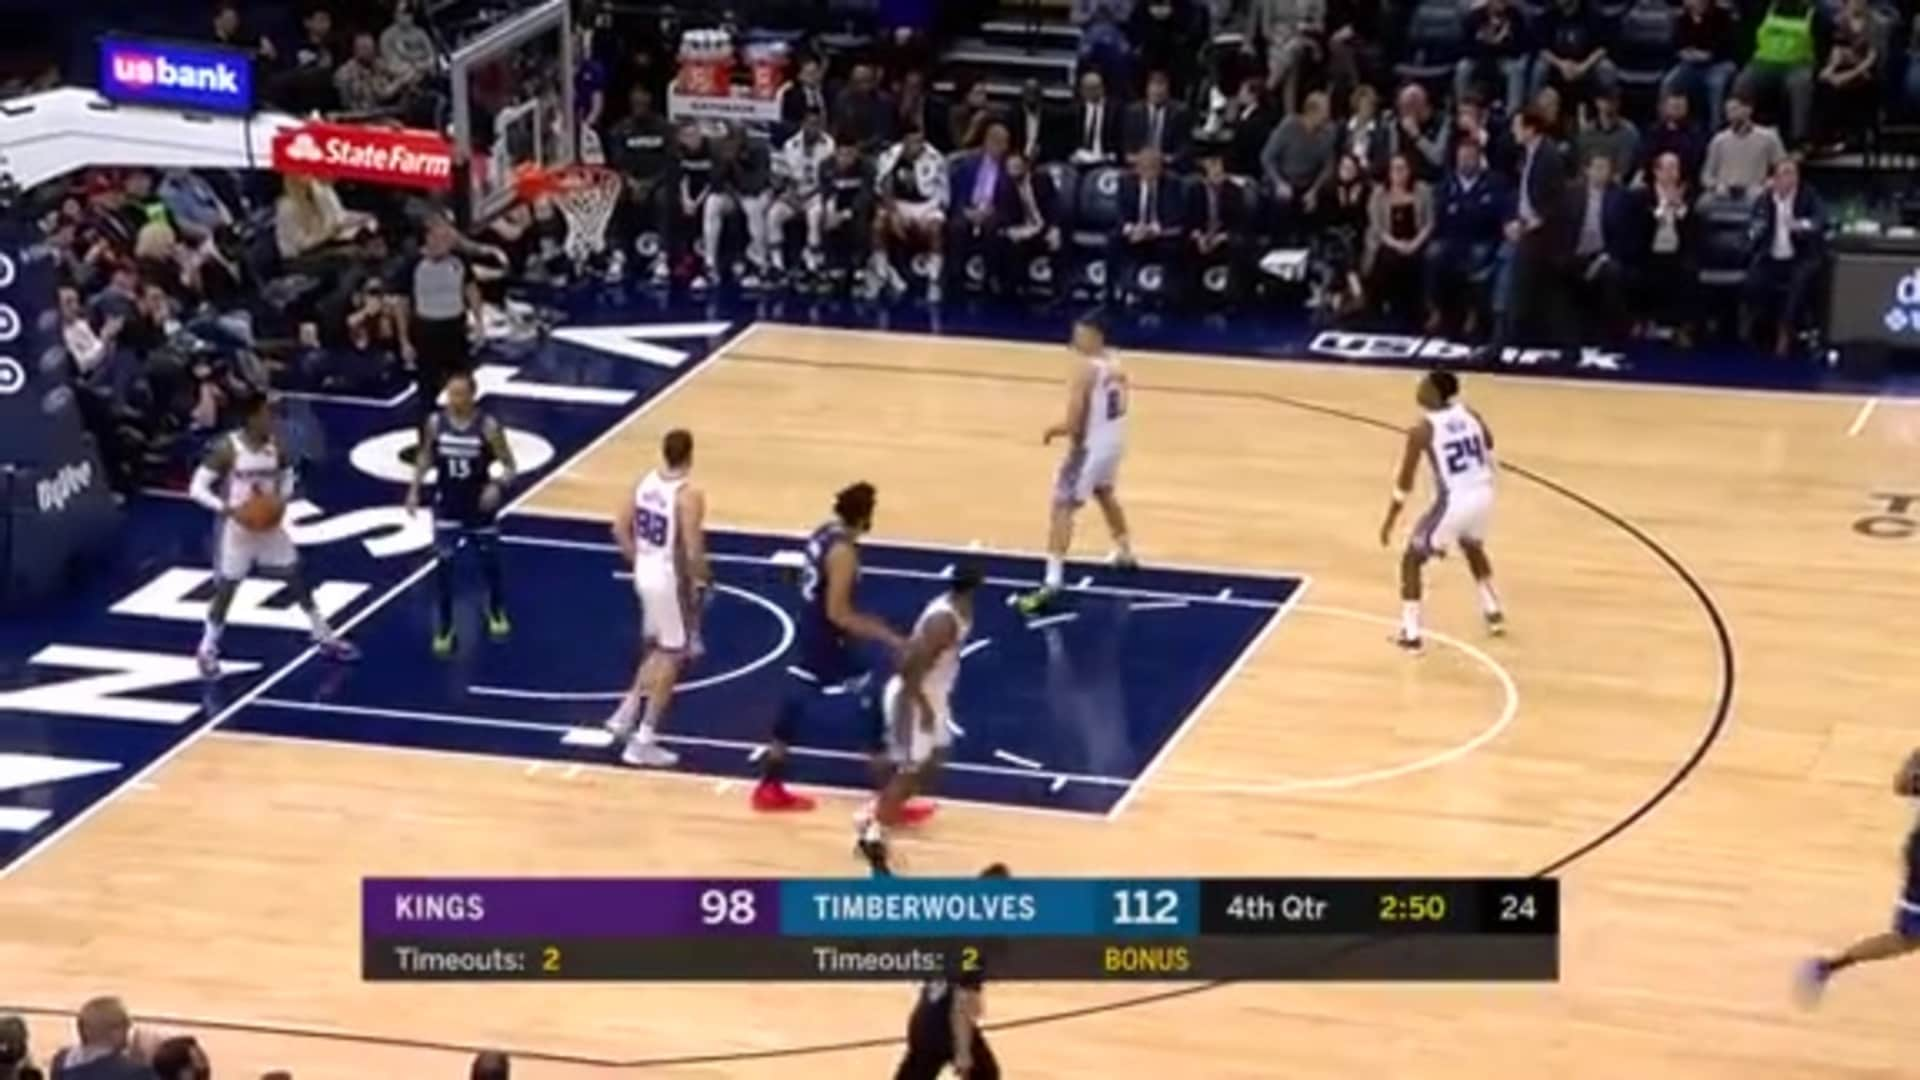 Timberwolves Make Franchise-Record 23 3-Pointers vs. Kings (1.27.20)